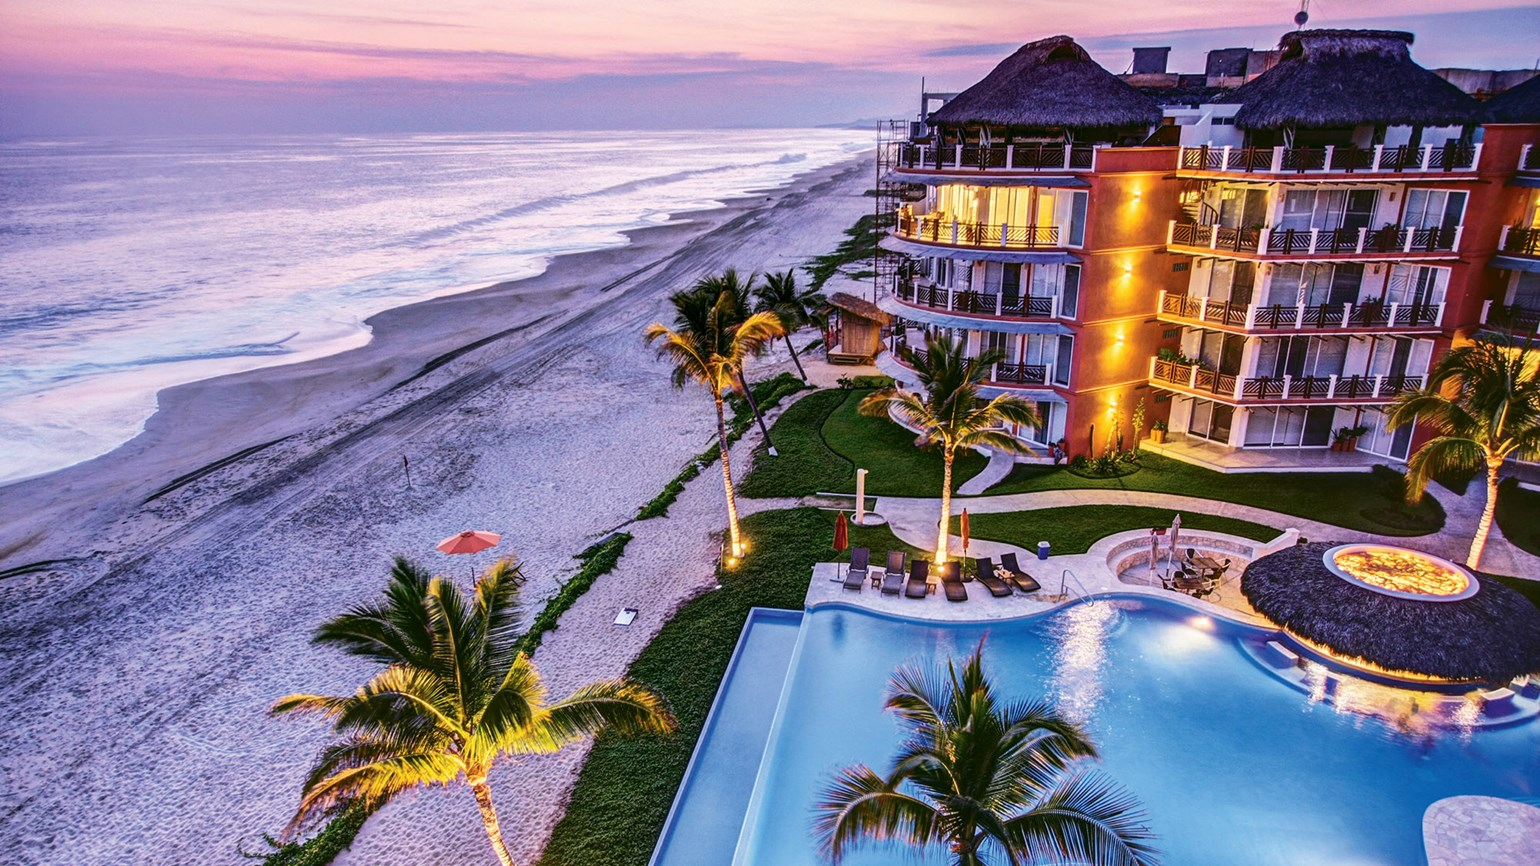 Vivo Resorts a hidden gem in Puerto Escondido